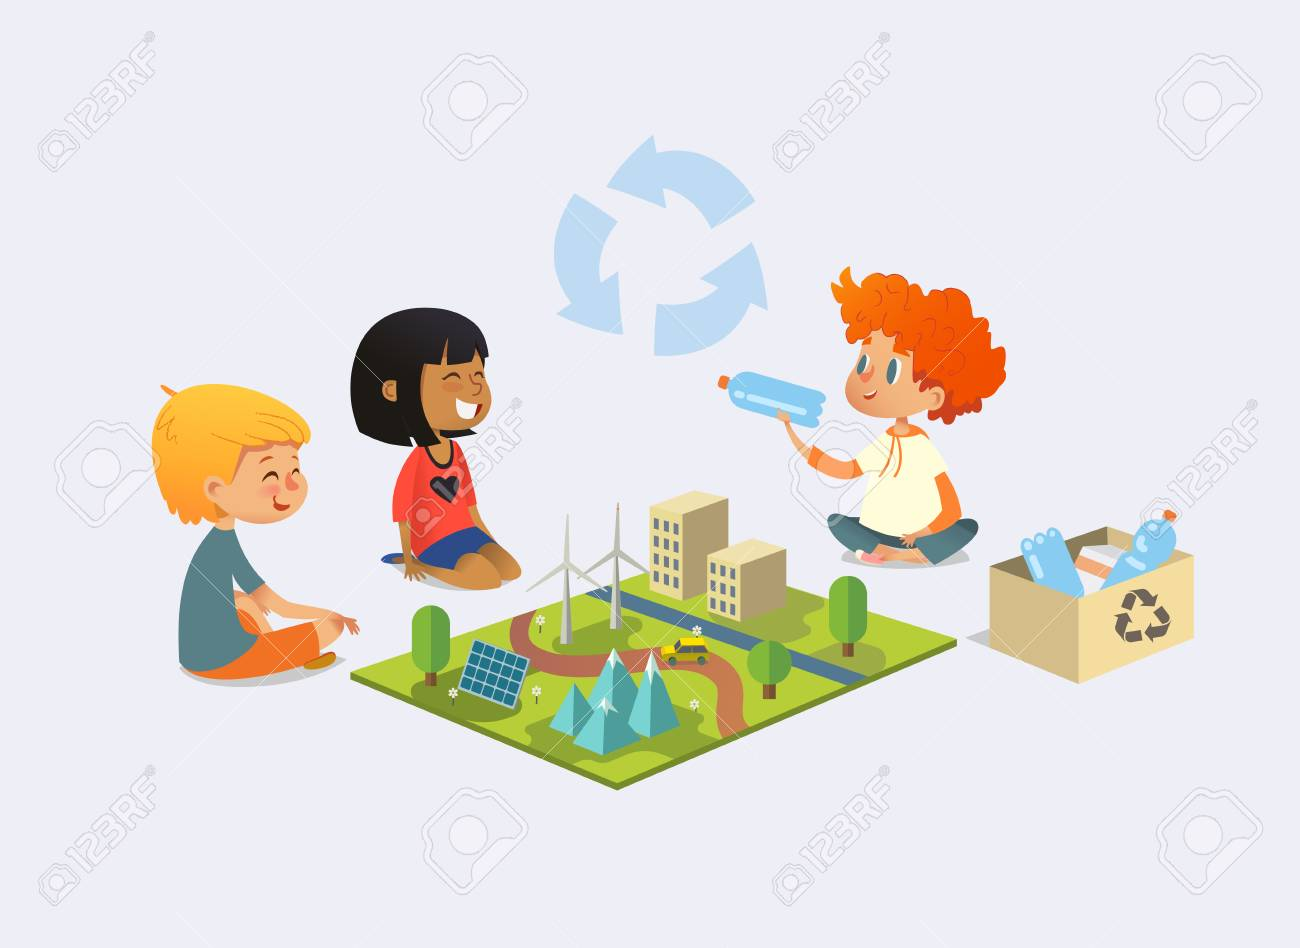 Happy kids sit on floor in circle around toy model with wind and solar power plants, redhead boy demonstrates plastic bottles and discuss recycling and ecological waste disposal. Vector illustration. - 101112289